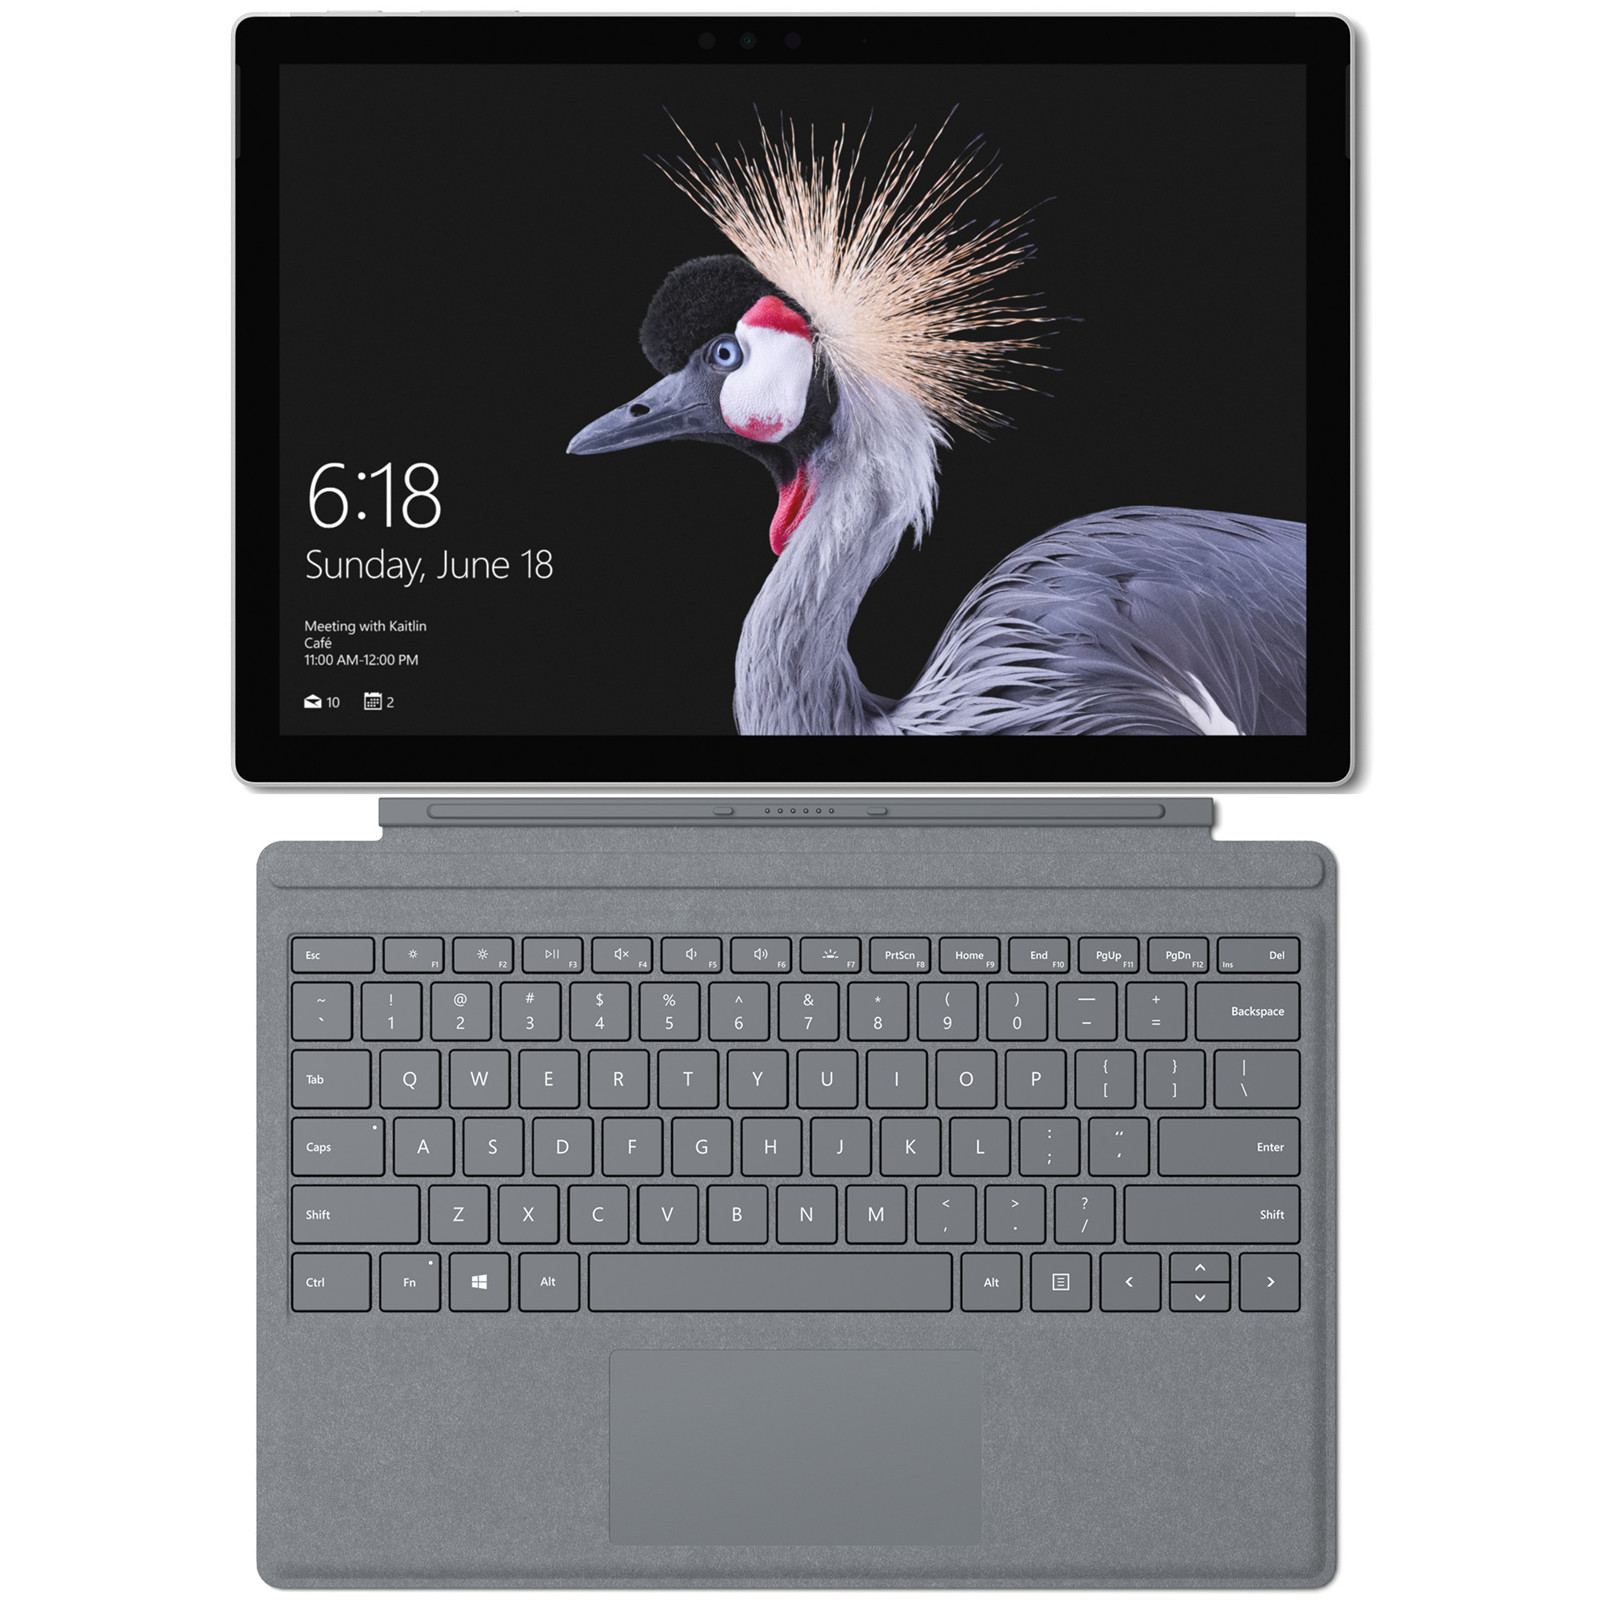 Microsoft Surface Pro (Consumer Mode) - Intel i5 8GB 256GB WIN 10 Pro (No Pen) Bundle with Platinum Keyboard Cover - Newest